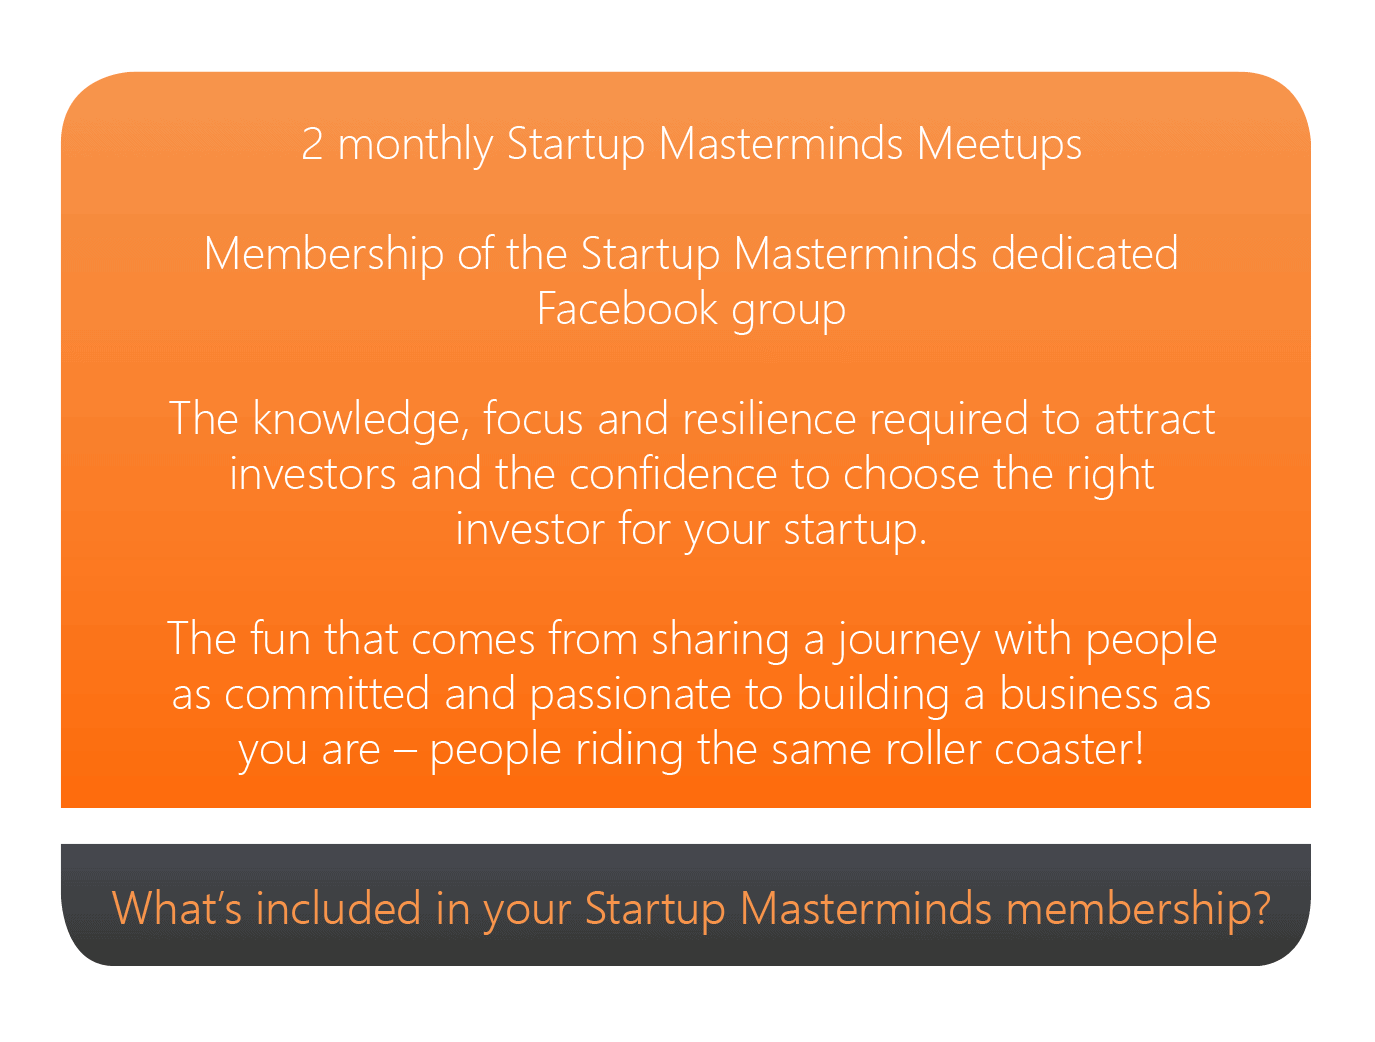 Included in your Startup Masterminds membership is: 2 monthly Startup Mastermind meetups Membership of the Startup Masterminds dedicated Facebook group The knowledge, focus and resilience required to get your business to traction and the confidence to choose the right investor for your startup The fun that comes from sharing a journey with people as committed and passionate as you are!